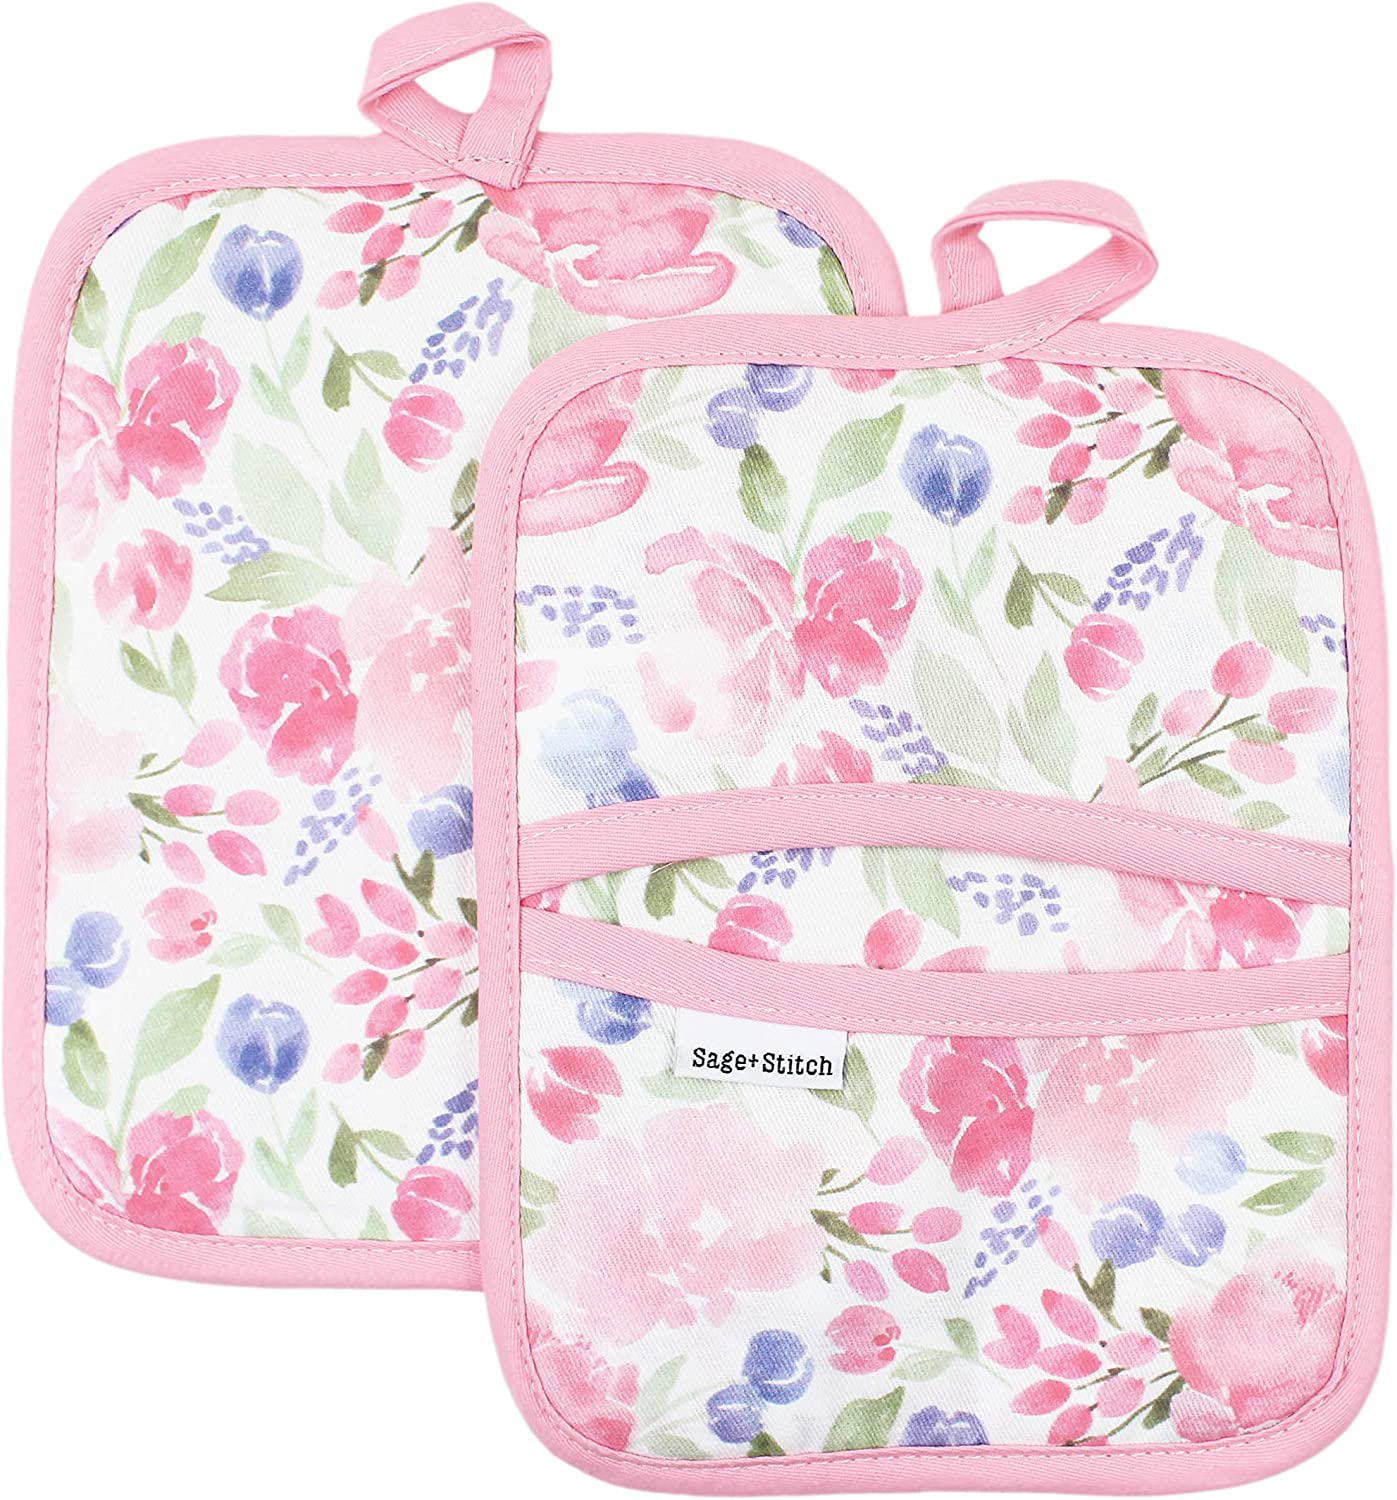 Sage and Stitch Kitchen Pot Holders for Women 7'' x 9'' with Hand Pockets and Hanging Loop, Dual Function Oven Mitt Trivet Potholder Hot Pad 100% Cotton, Heat Resistant Set of 2 - Pink Floral